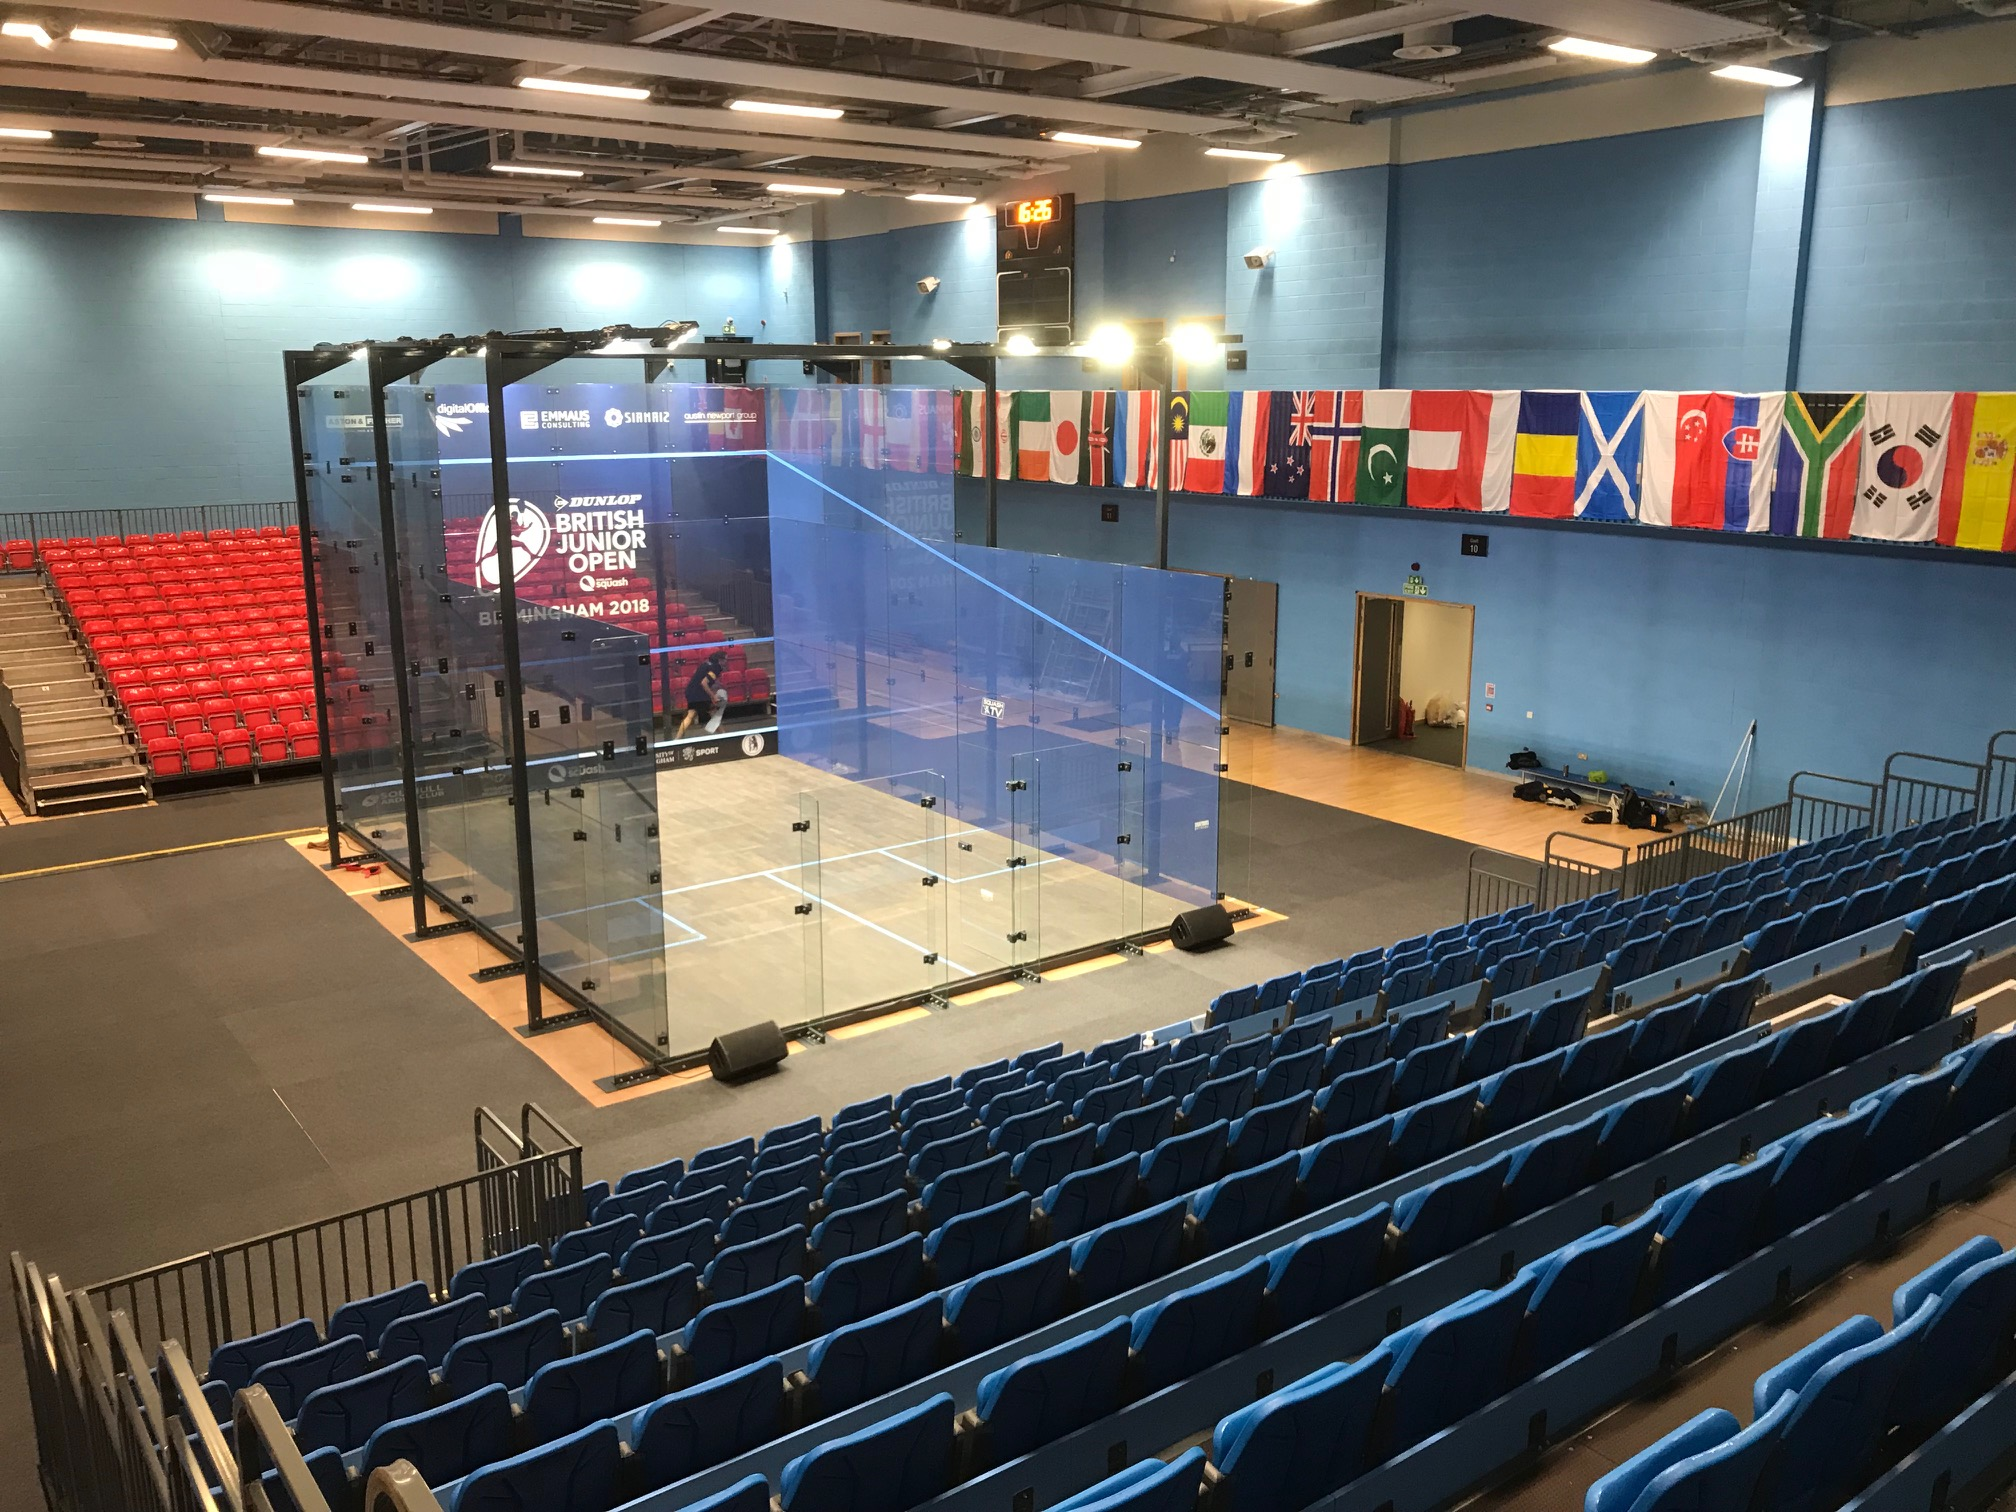 Sarah-Jane Perry will play rising star Millie Tomlinson on the all-glass show court at the new University of Birmingham Sport & Fitness's Munrow Arena